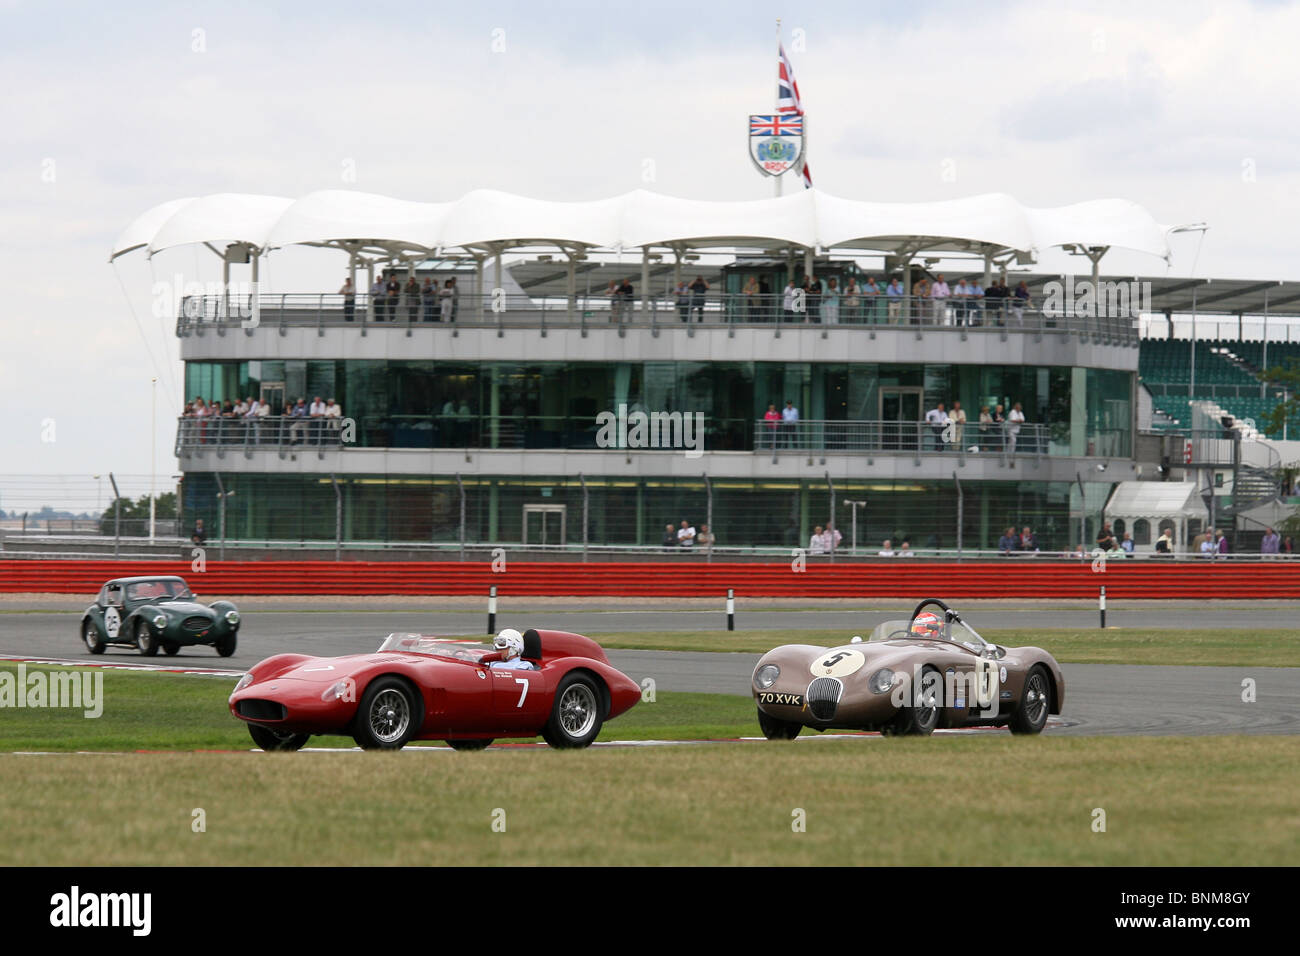 Sir Stirling Moss drives the OSCA during the Silverstone Classic, Silverstone Circuit, July 24th 2010. - Stock Image